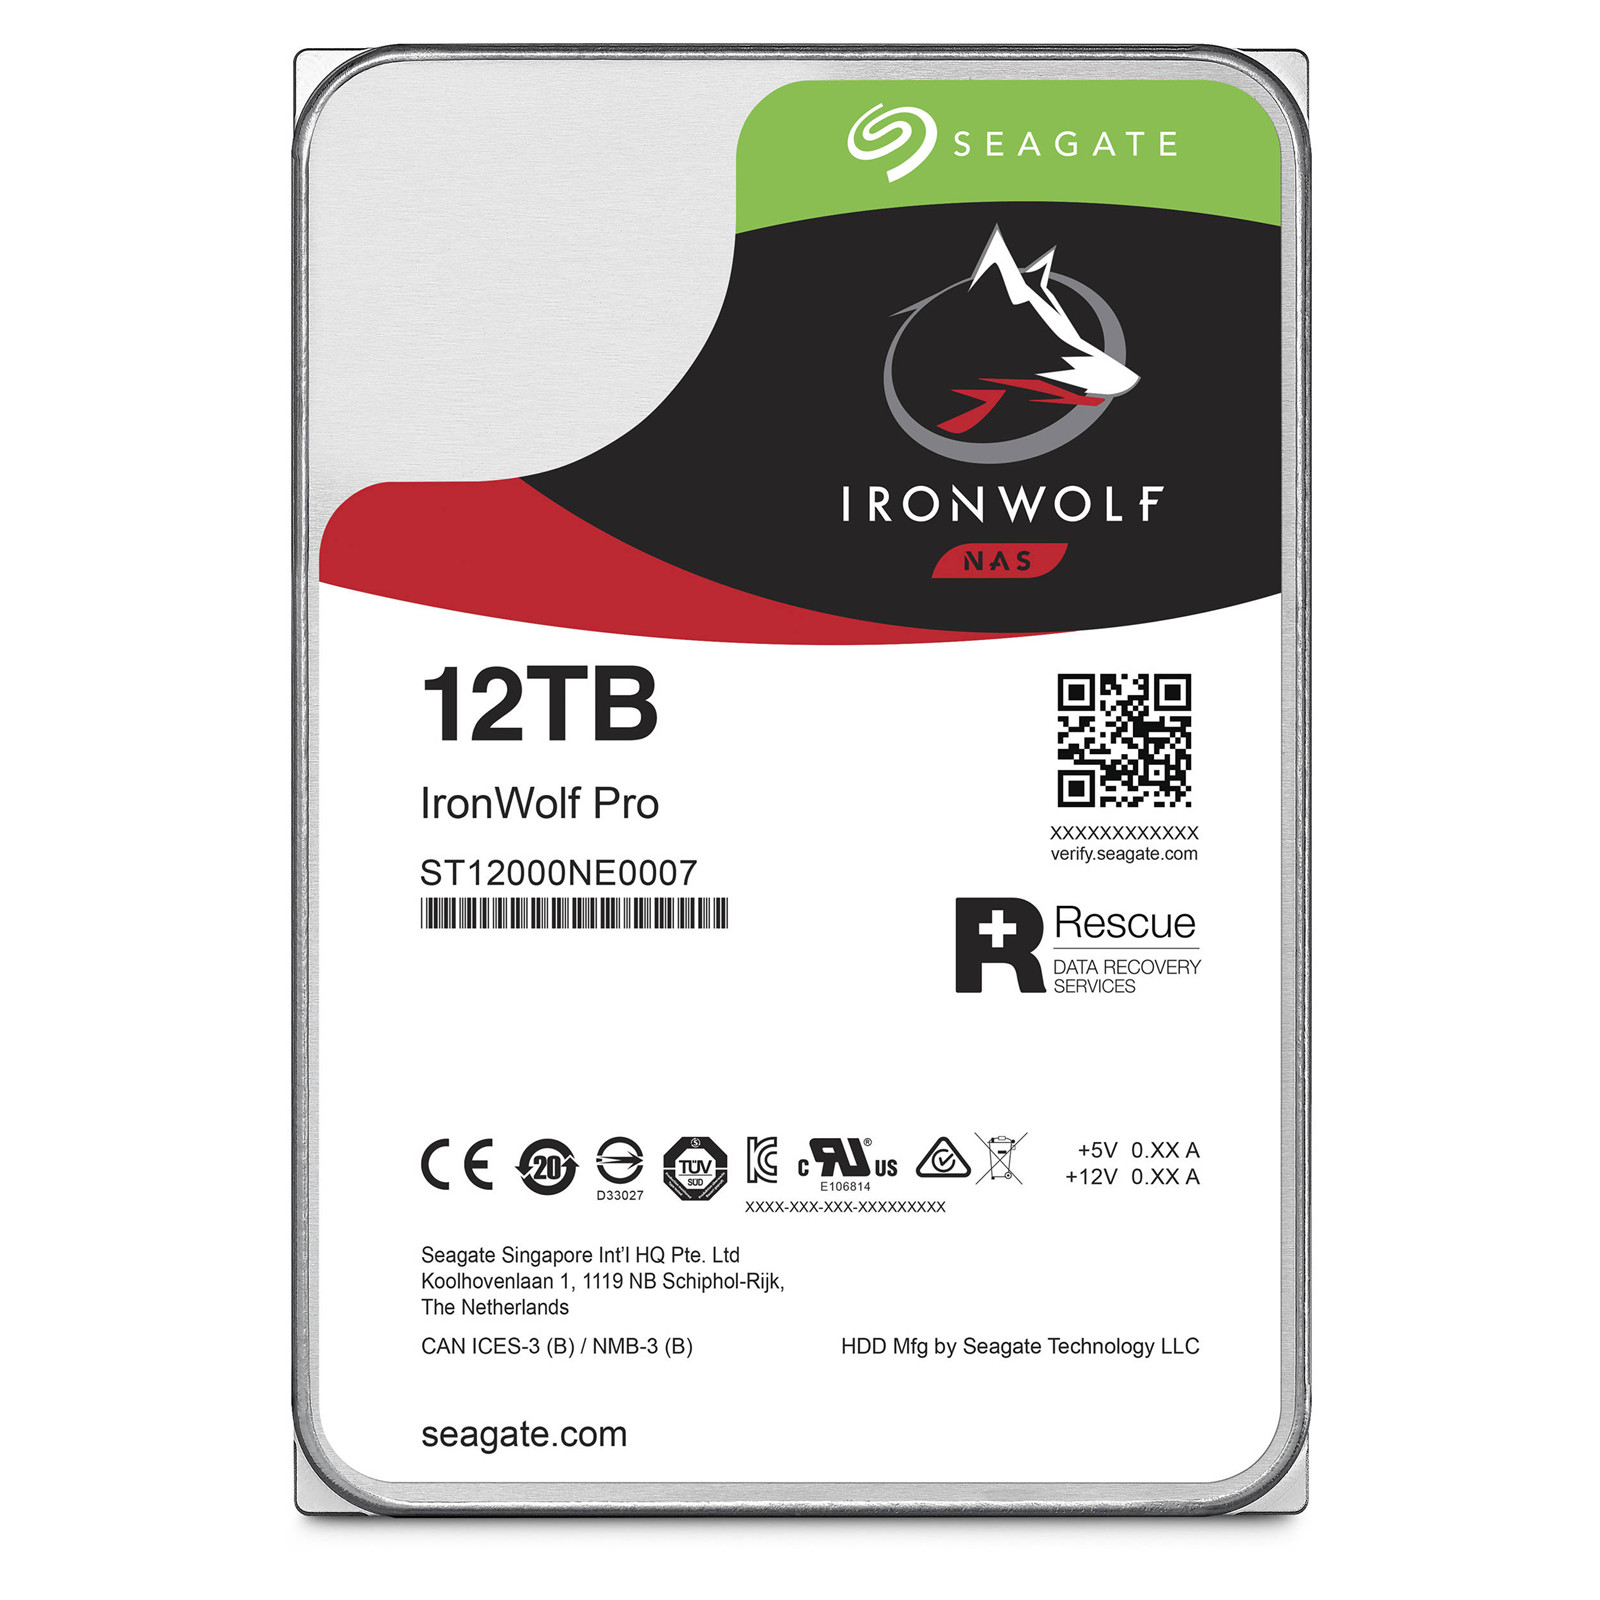 Buy The Seagate Ironwolf Pro 12tb 256mb Cache 7200rpm Sata 60gb S Hdd Wd 4tb Purple Sata3 35 Internal Hard Drive Perfect For 1 16 Bay Nas System 5 Years Warranty